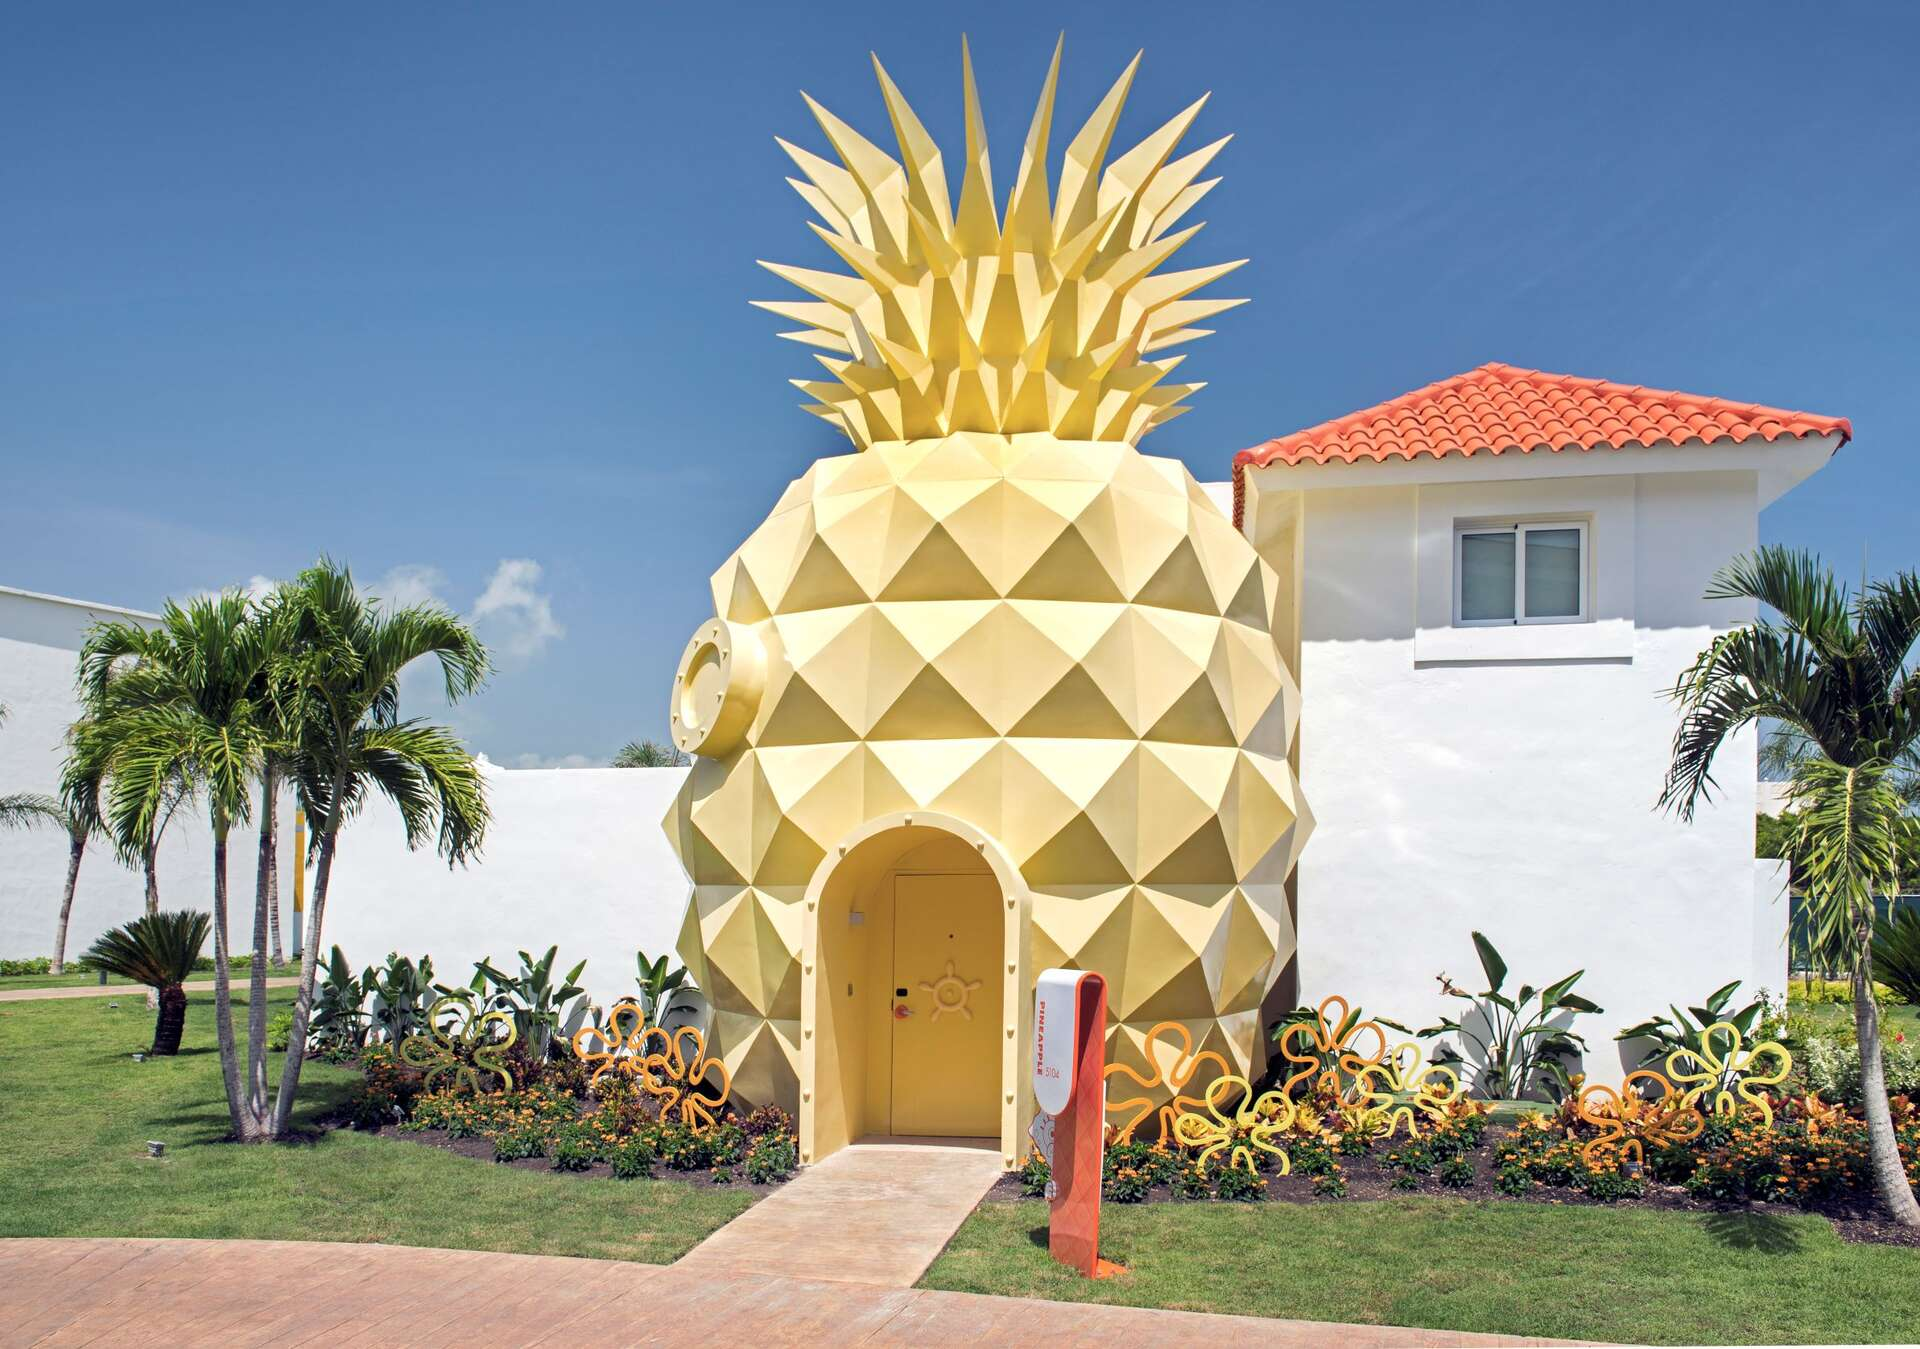 - The Pineapple - Image 1/26